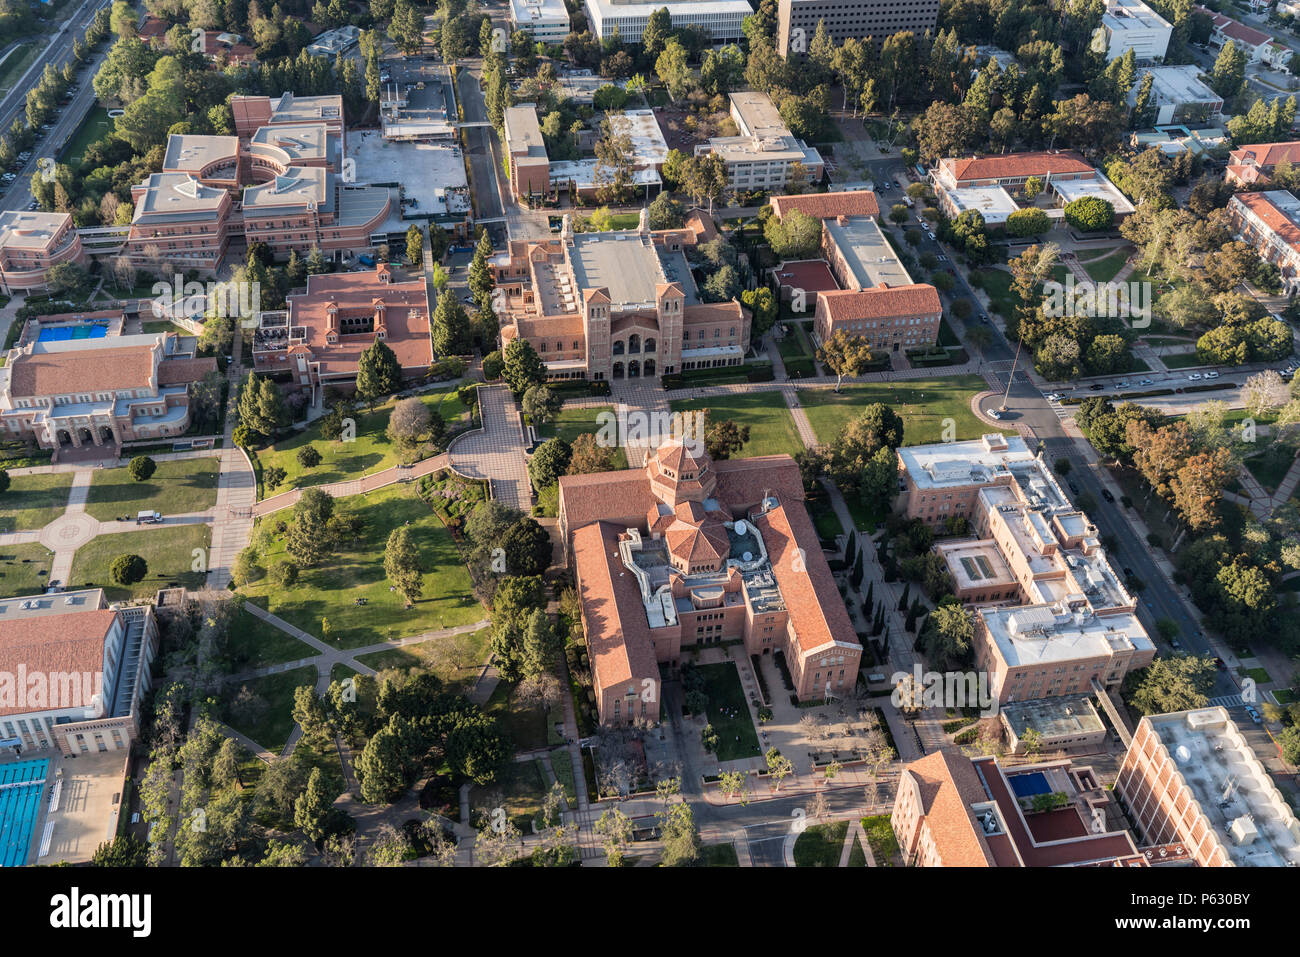 Los Angeles, California, USA - April 18, 2018:  Aerial overview of historic UCLA campus buildings near Westwood. - Stock Image